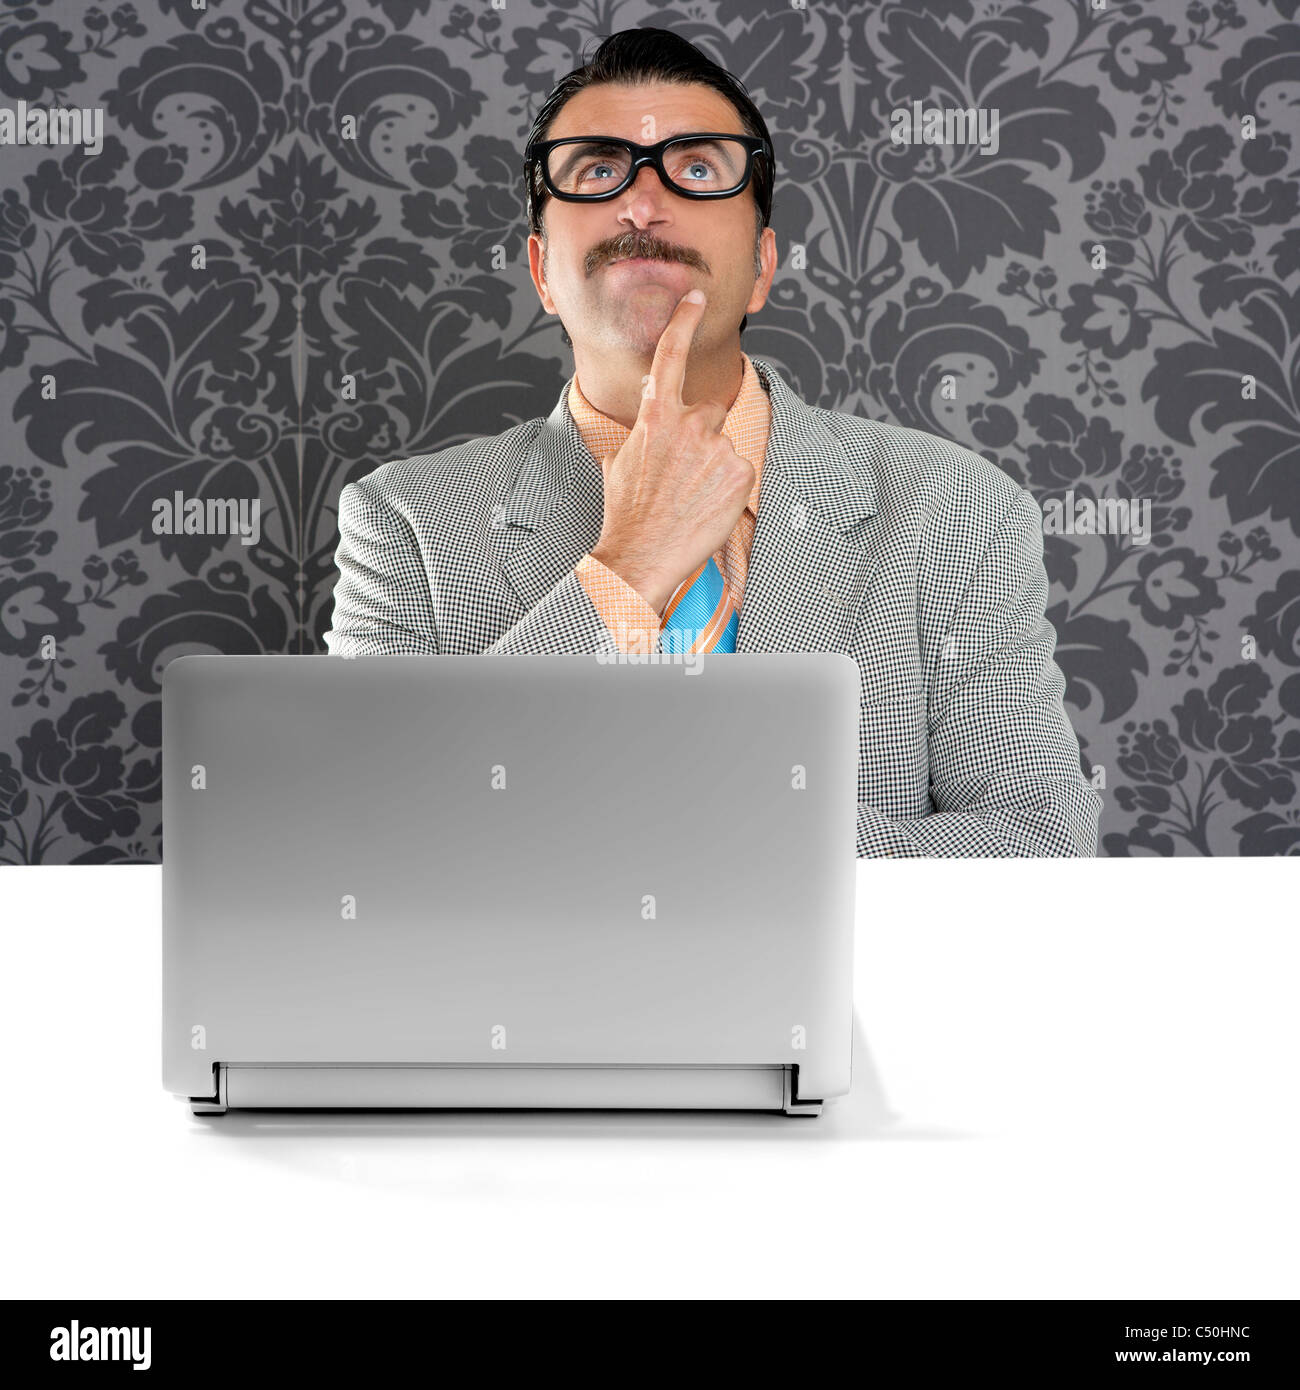 genius nerd silly glasses computer thinking gesture problem solution wallpaper background Stock Photo